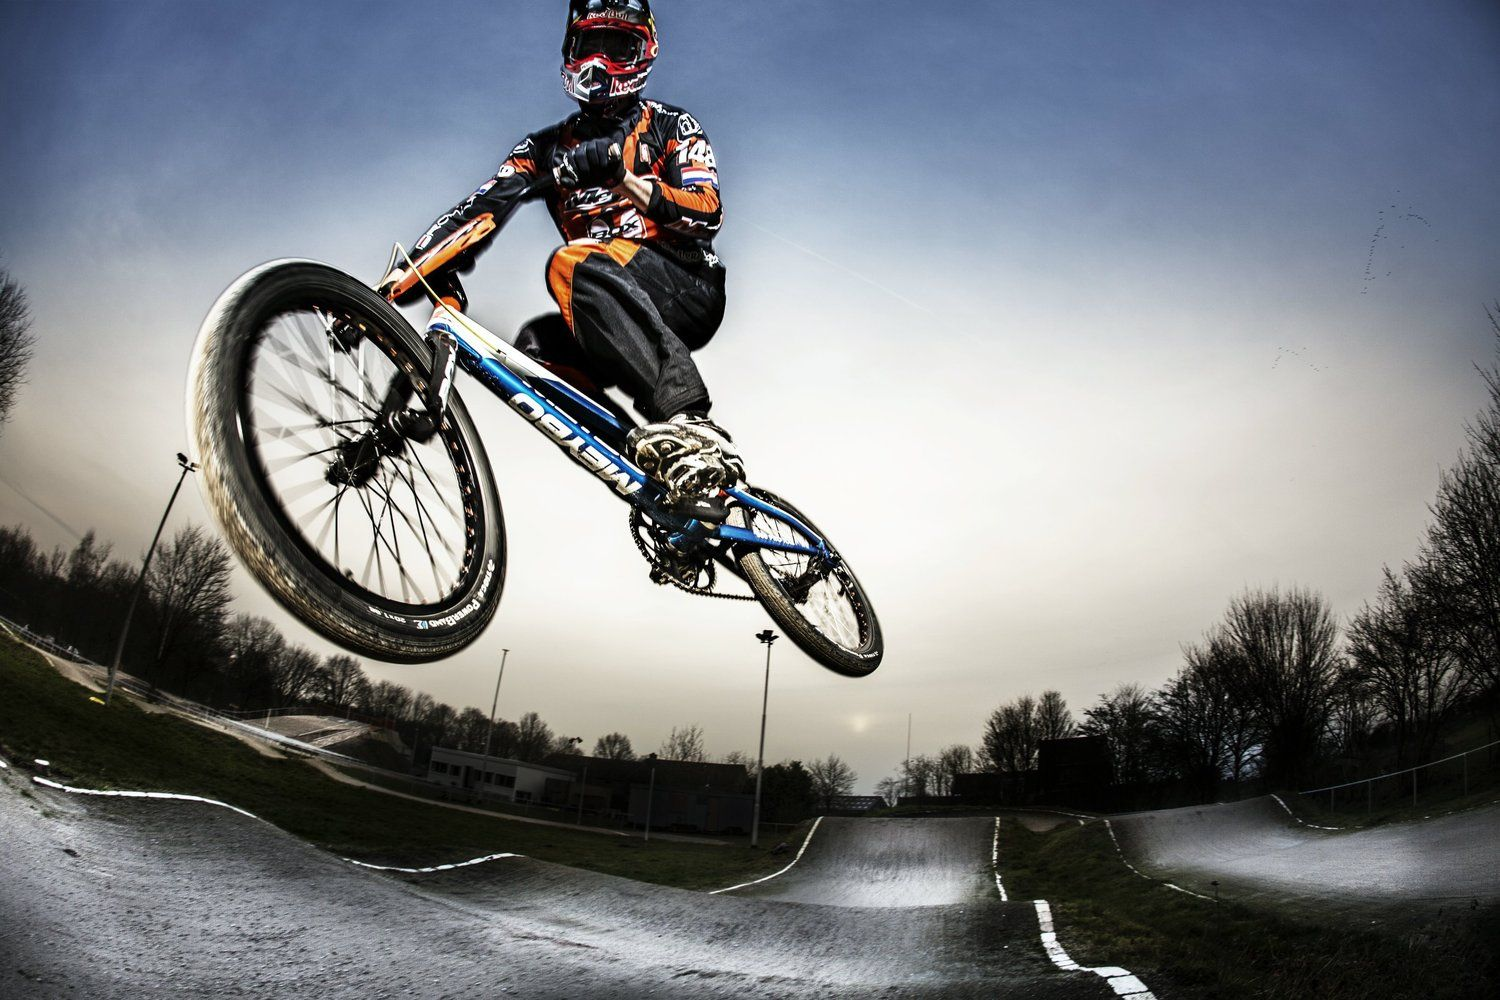 Picture Perfect Best Images Of The Week Bmx Bulls Team